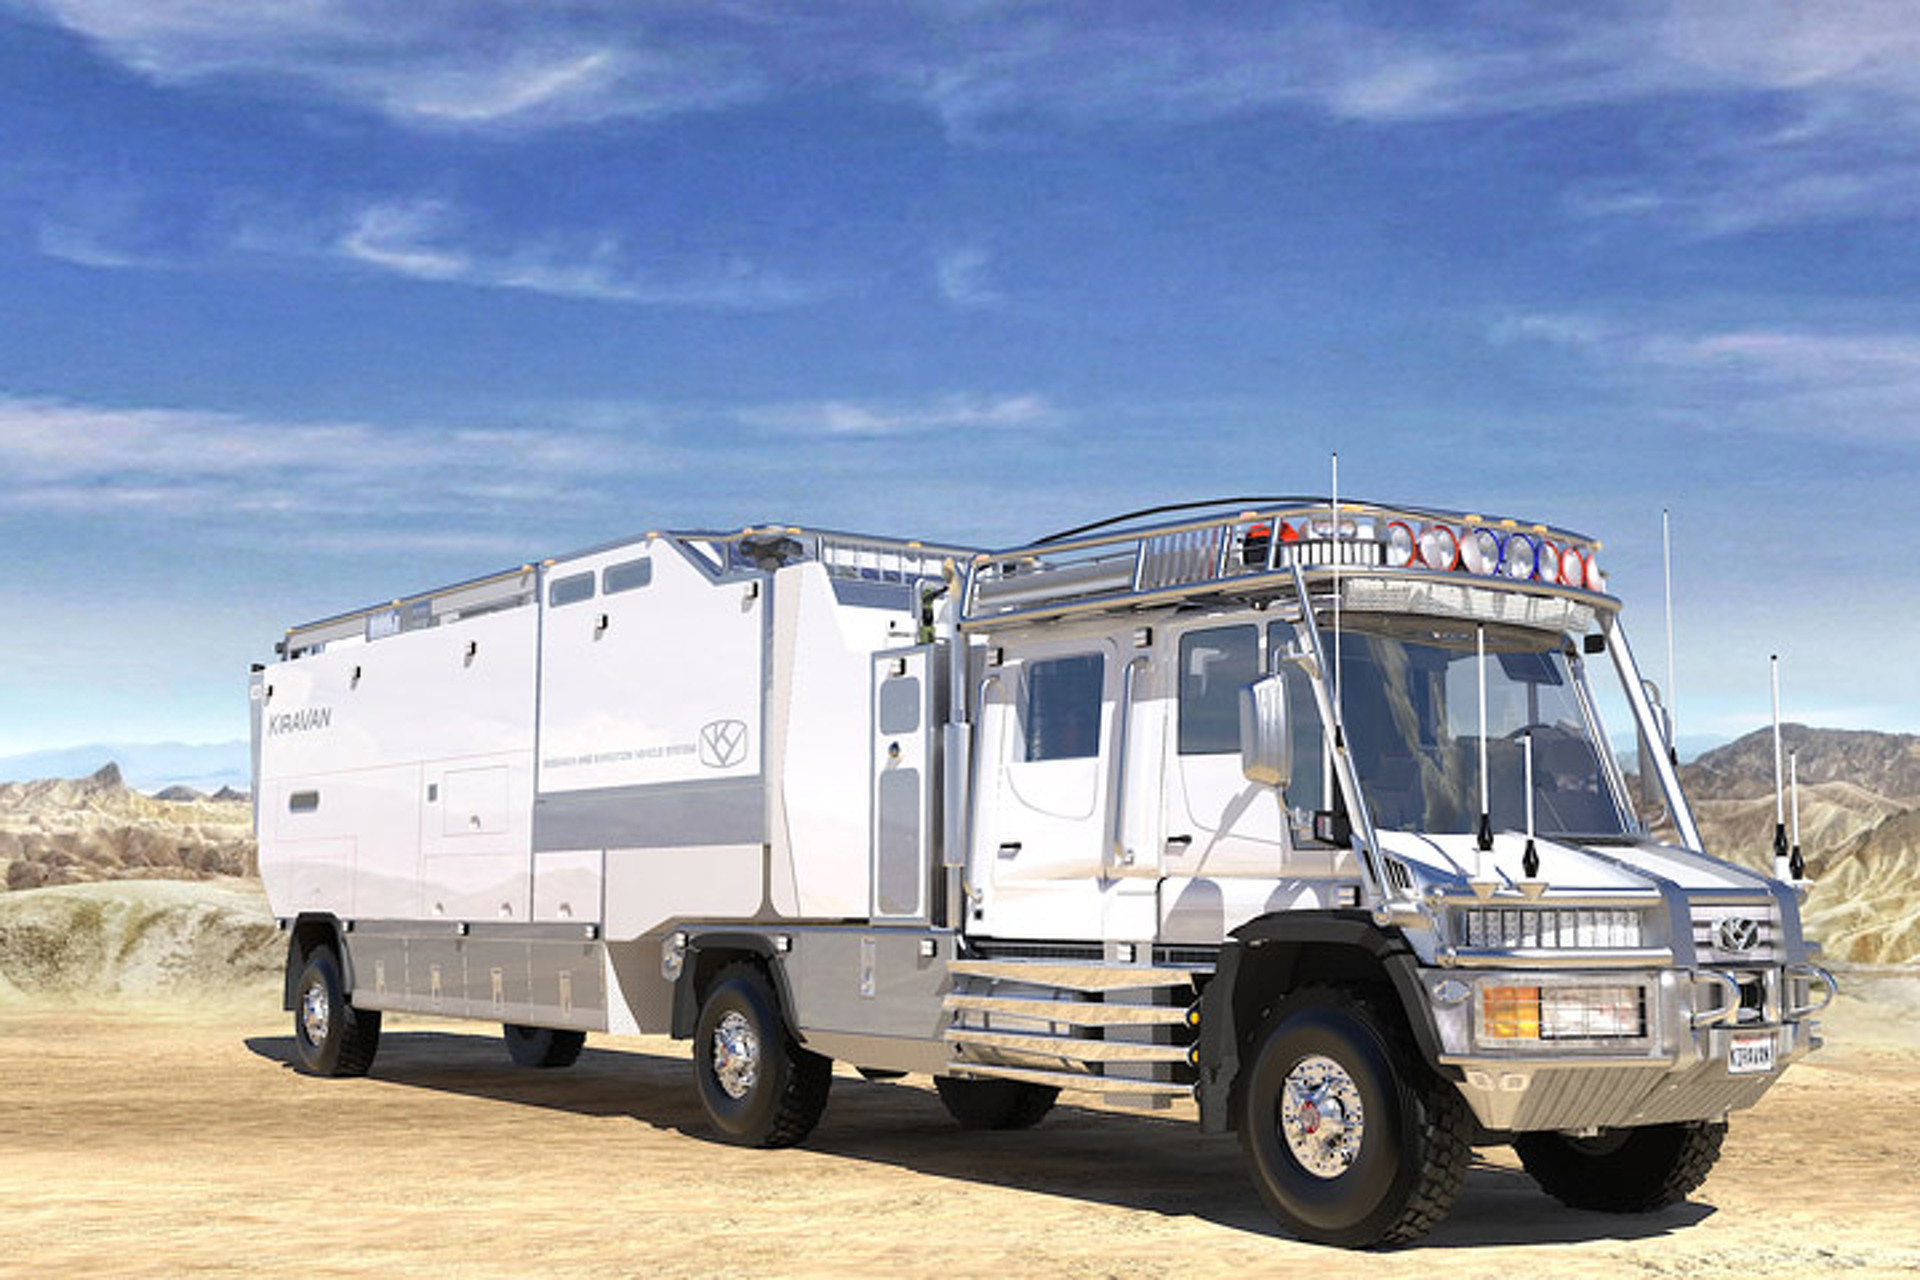 KiraVan: Meet the World's Most Extravagant Off-Road Truck